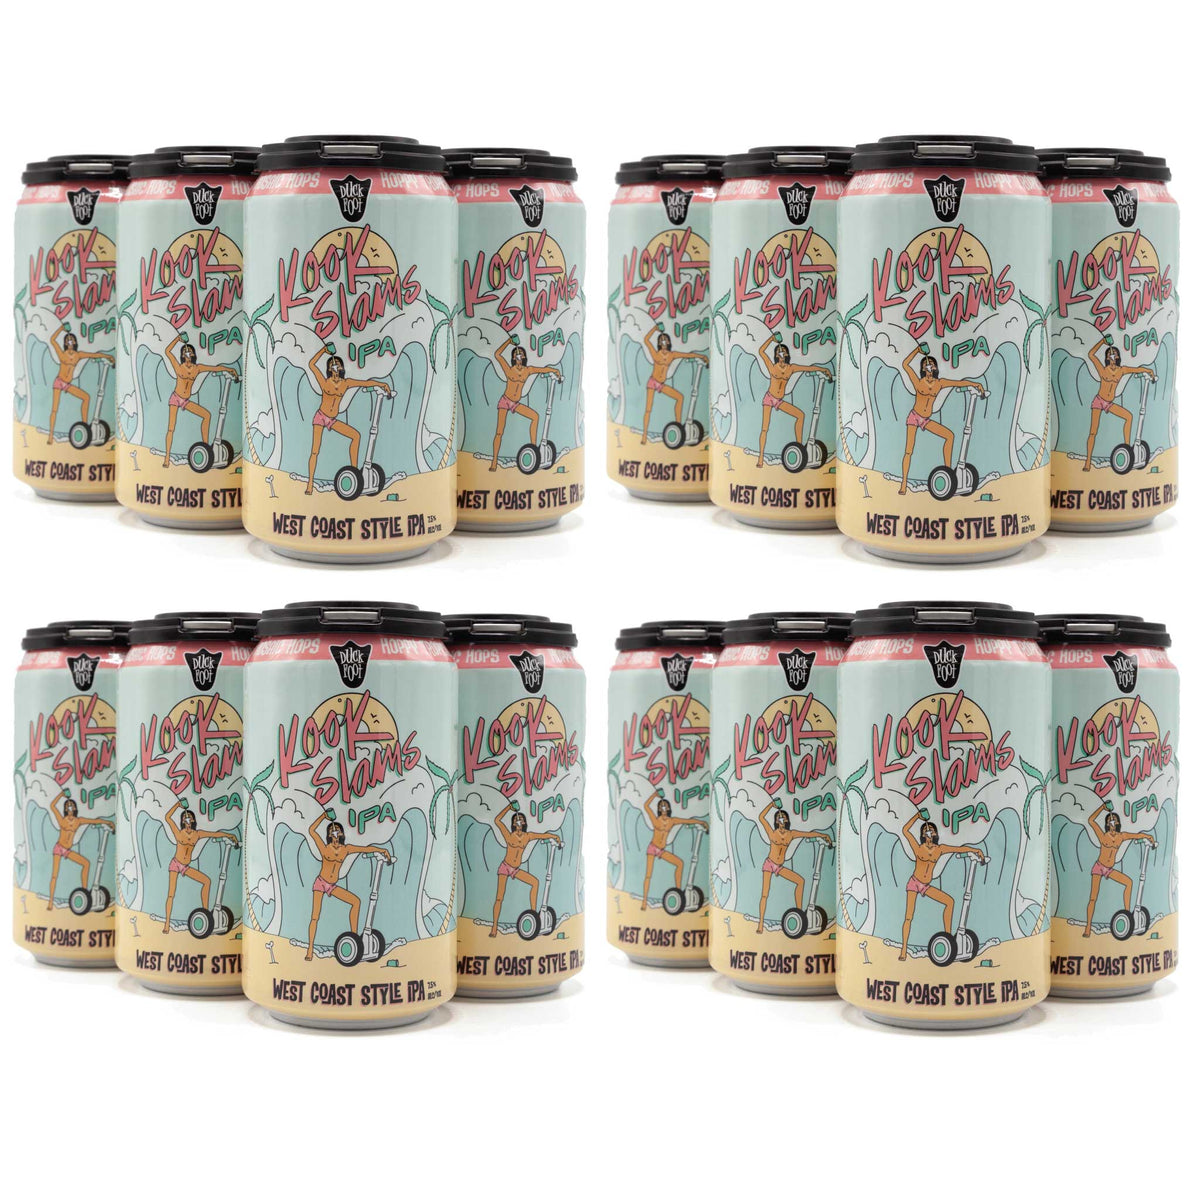 Kook Slams CASE (4 x 6 Pack of 12oz Cans) ** CA SHIPPING ONLY